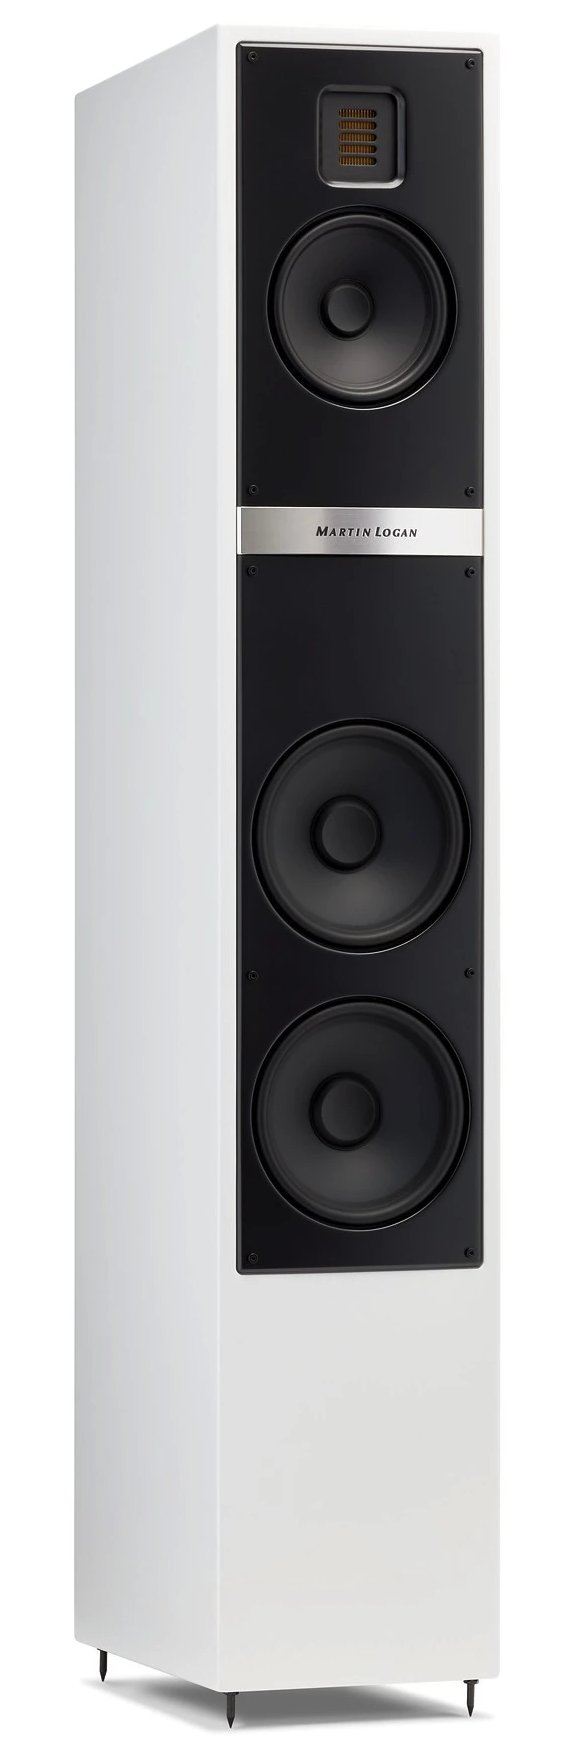 MartinLogan Motion 40i Tower Speaker - Single